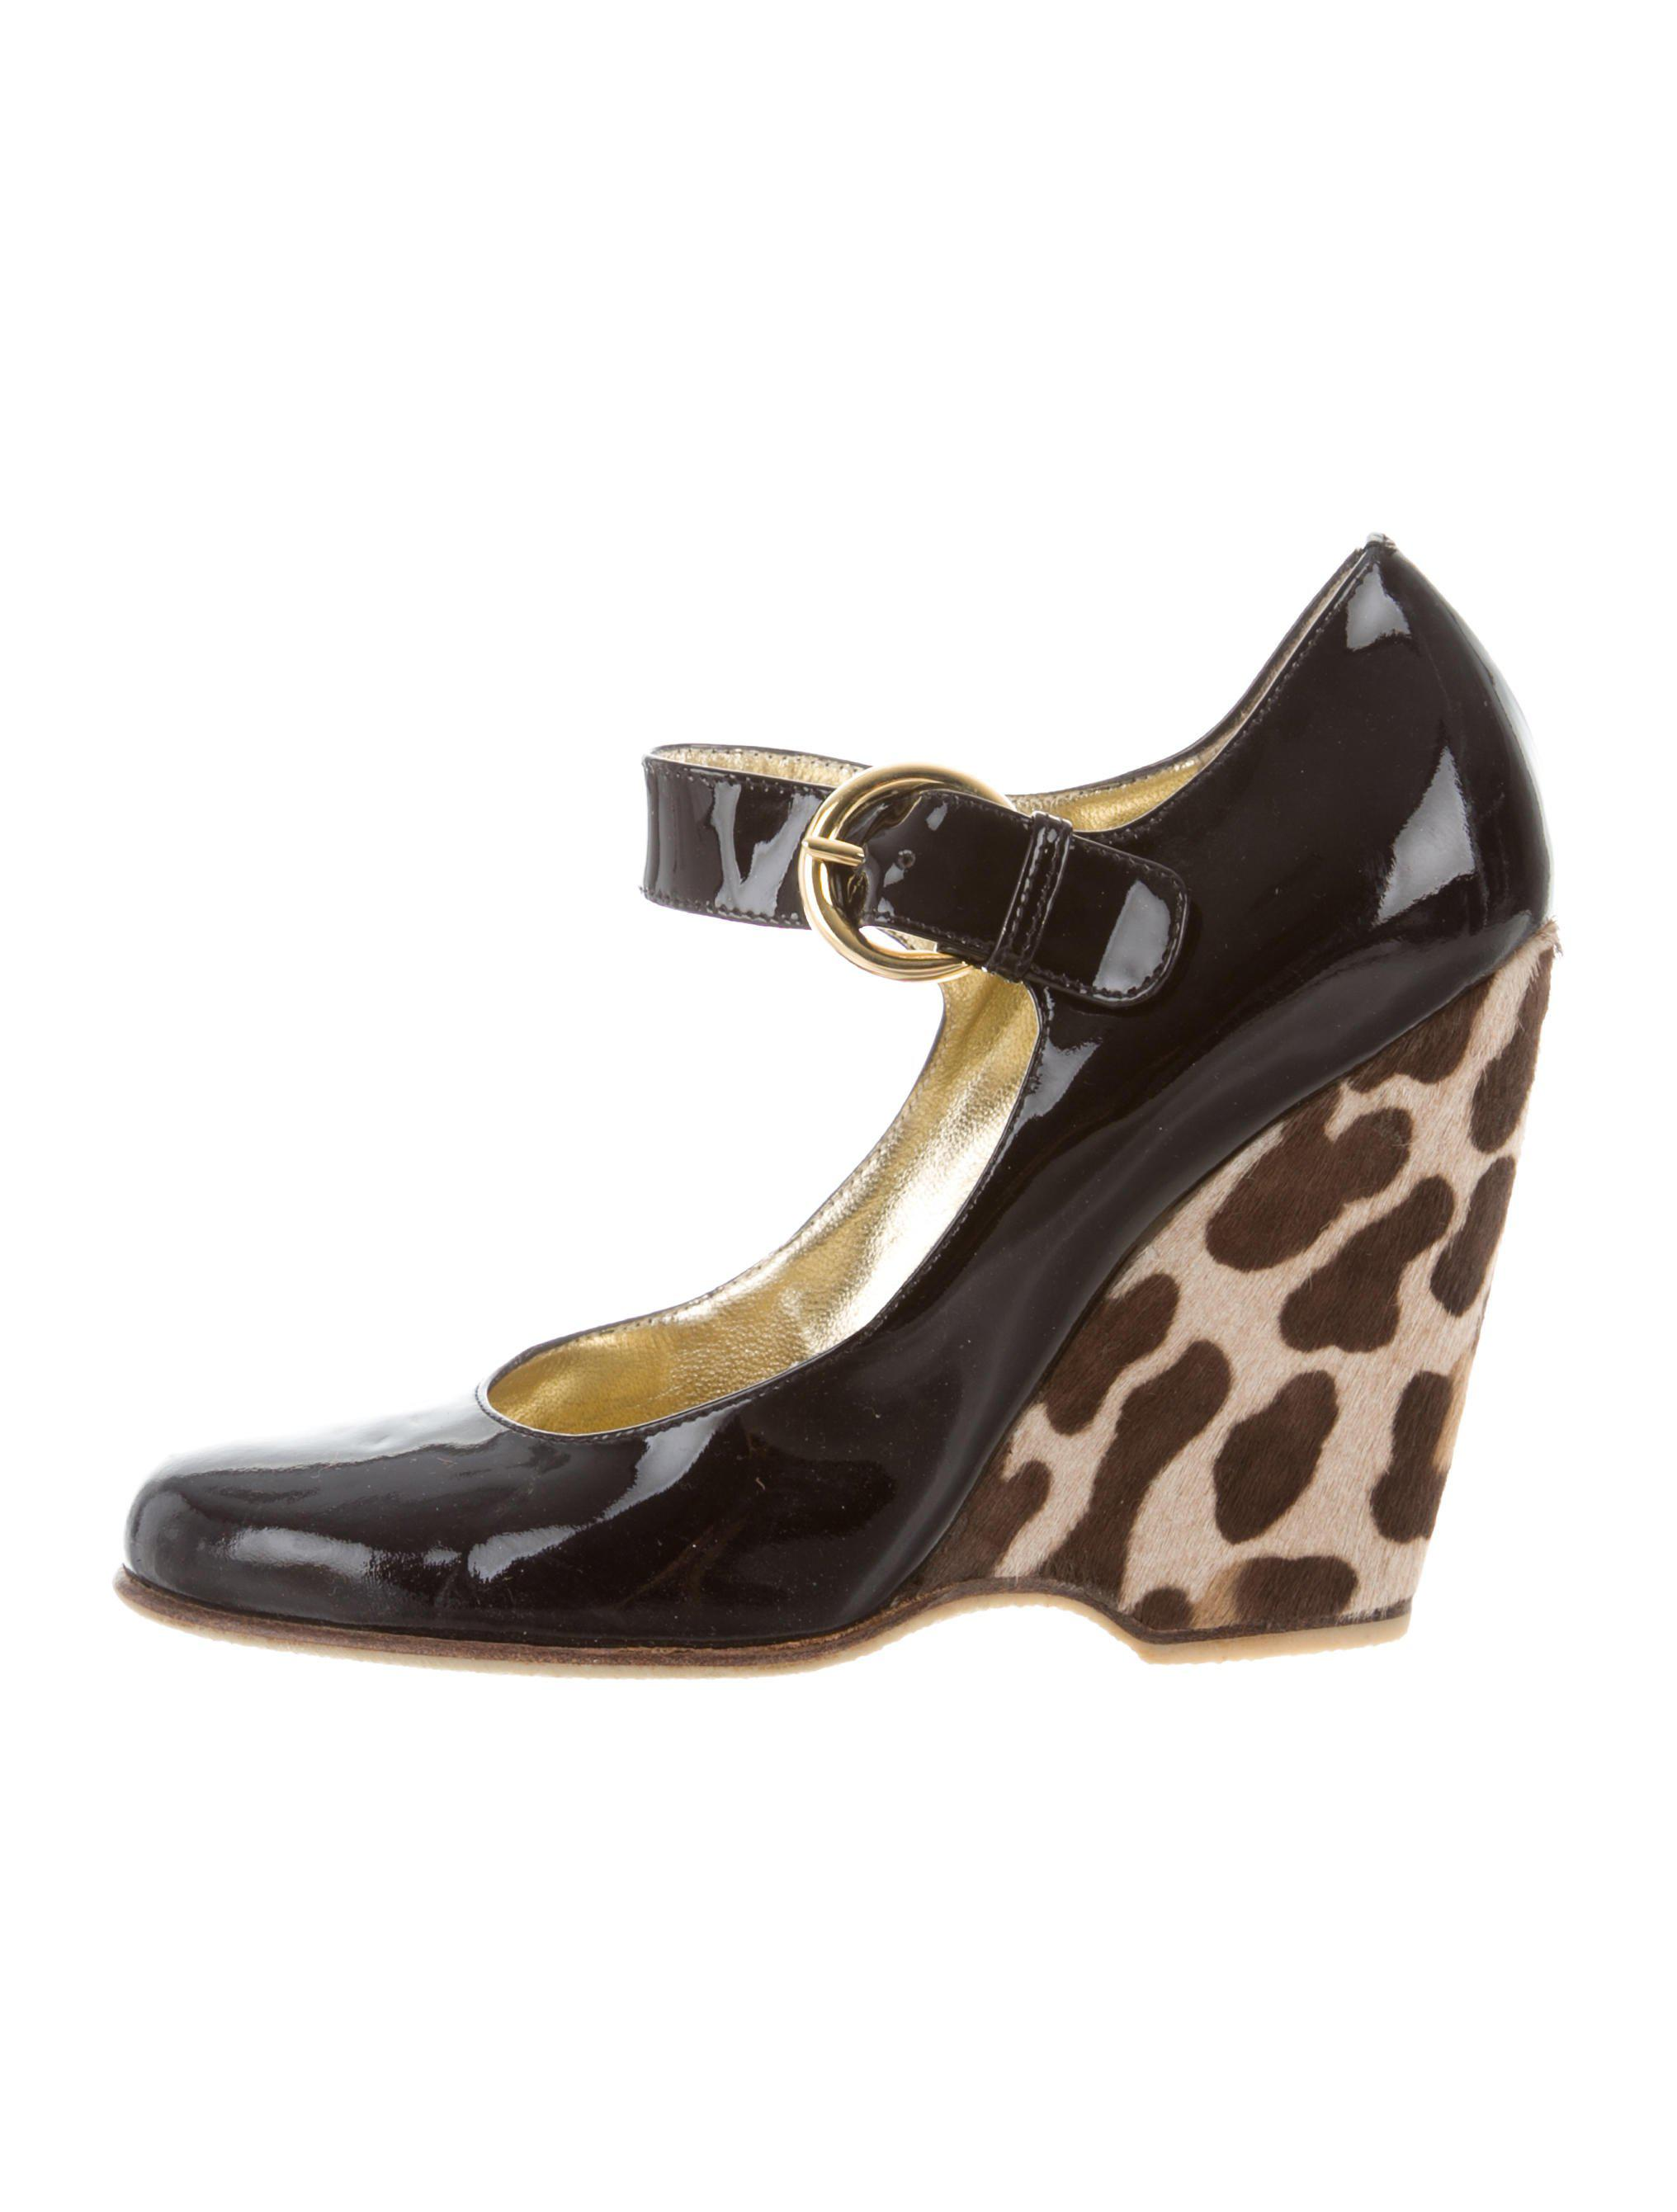 Giuseppe Zanotti Round-Toe Leopard Wedges latest collections sale online buy cheap very cheap ScdeZ